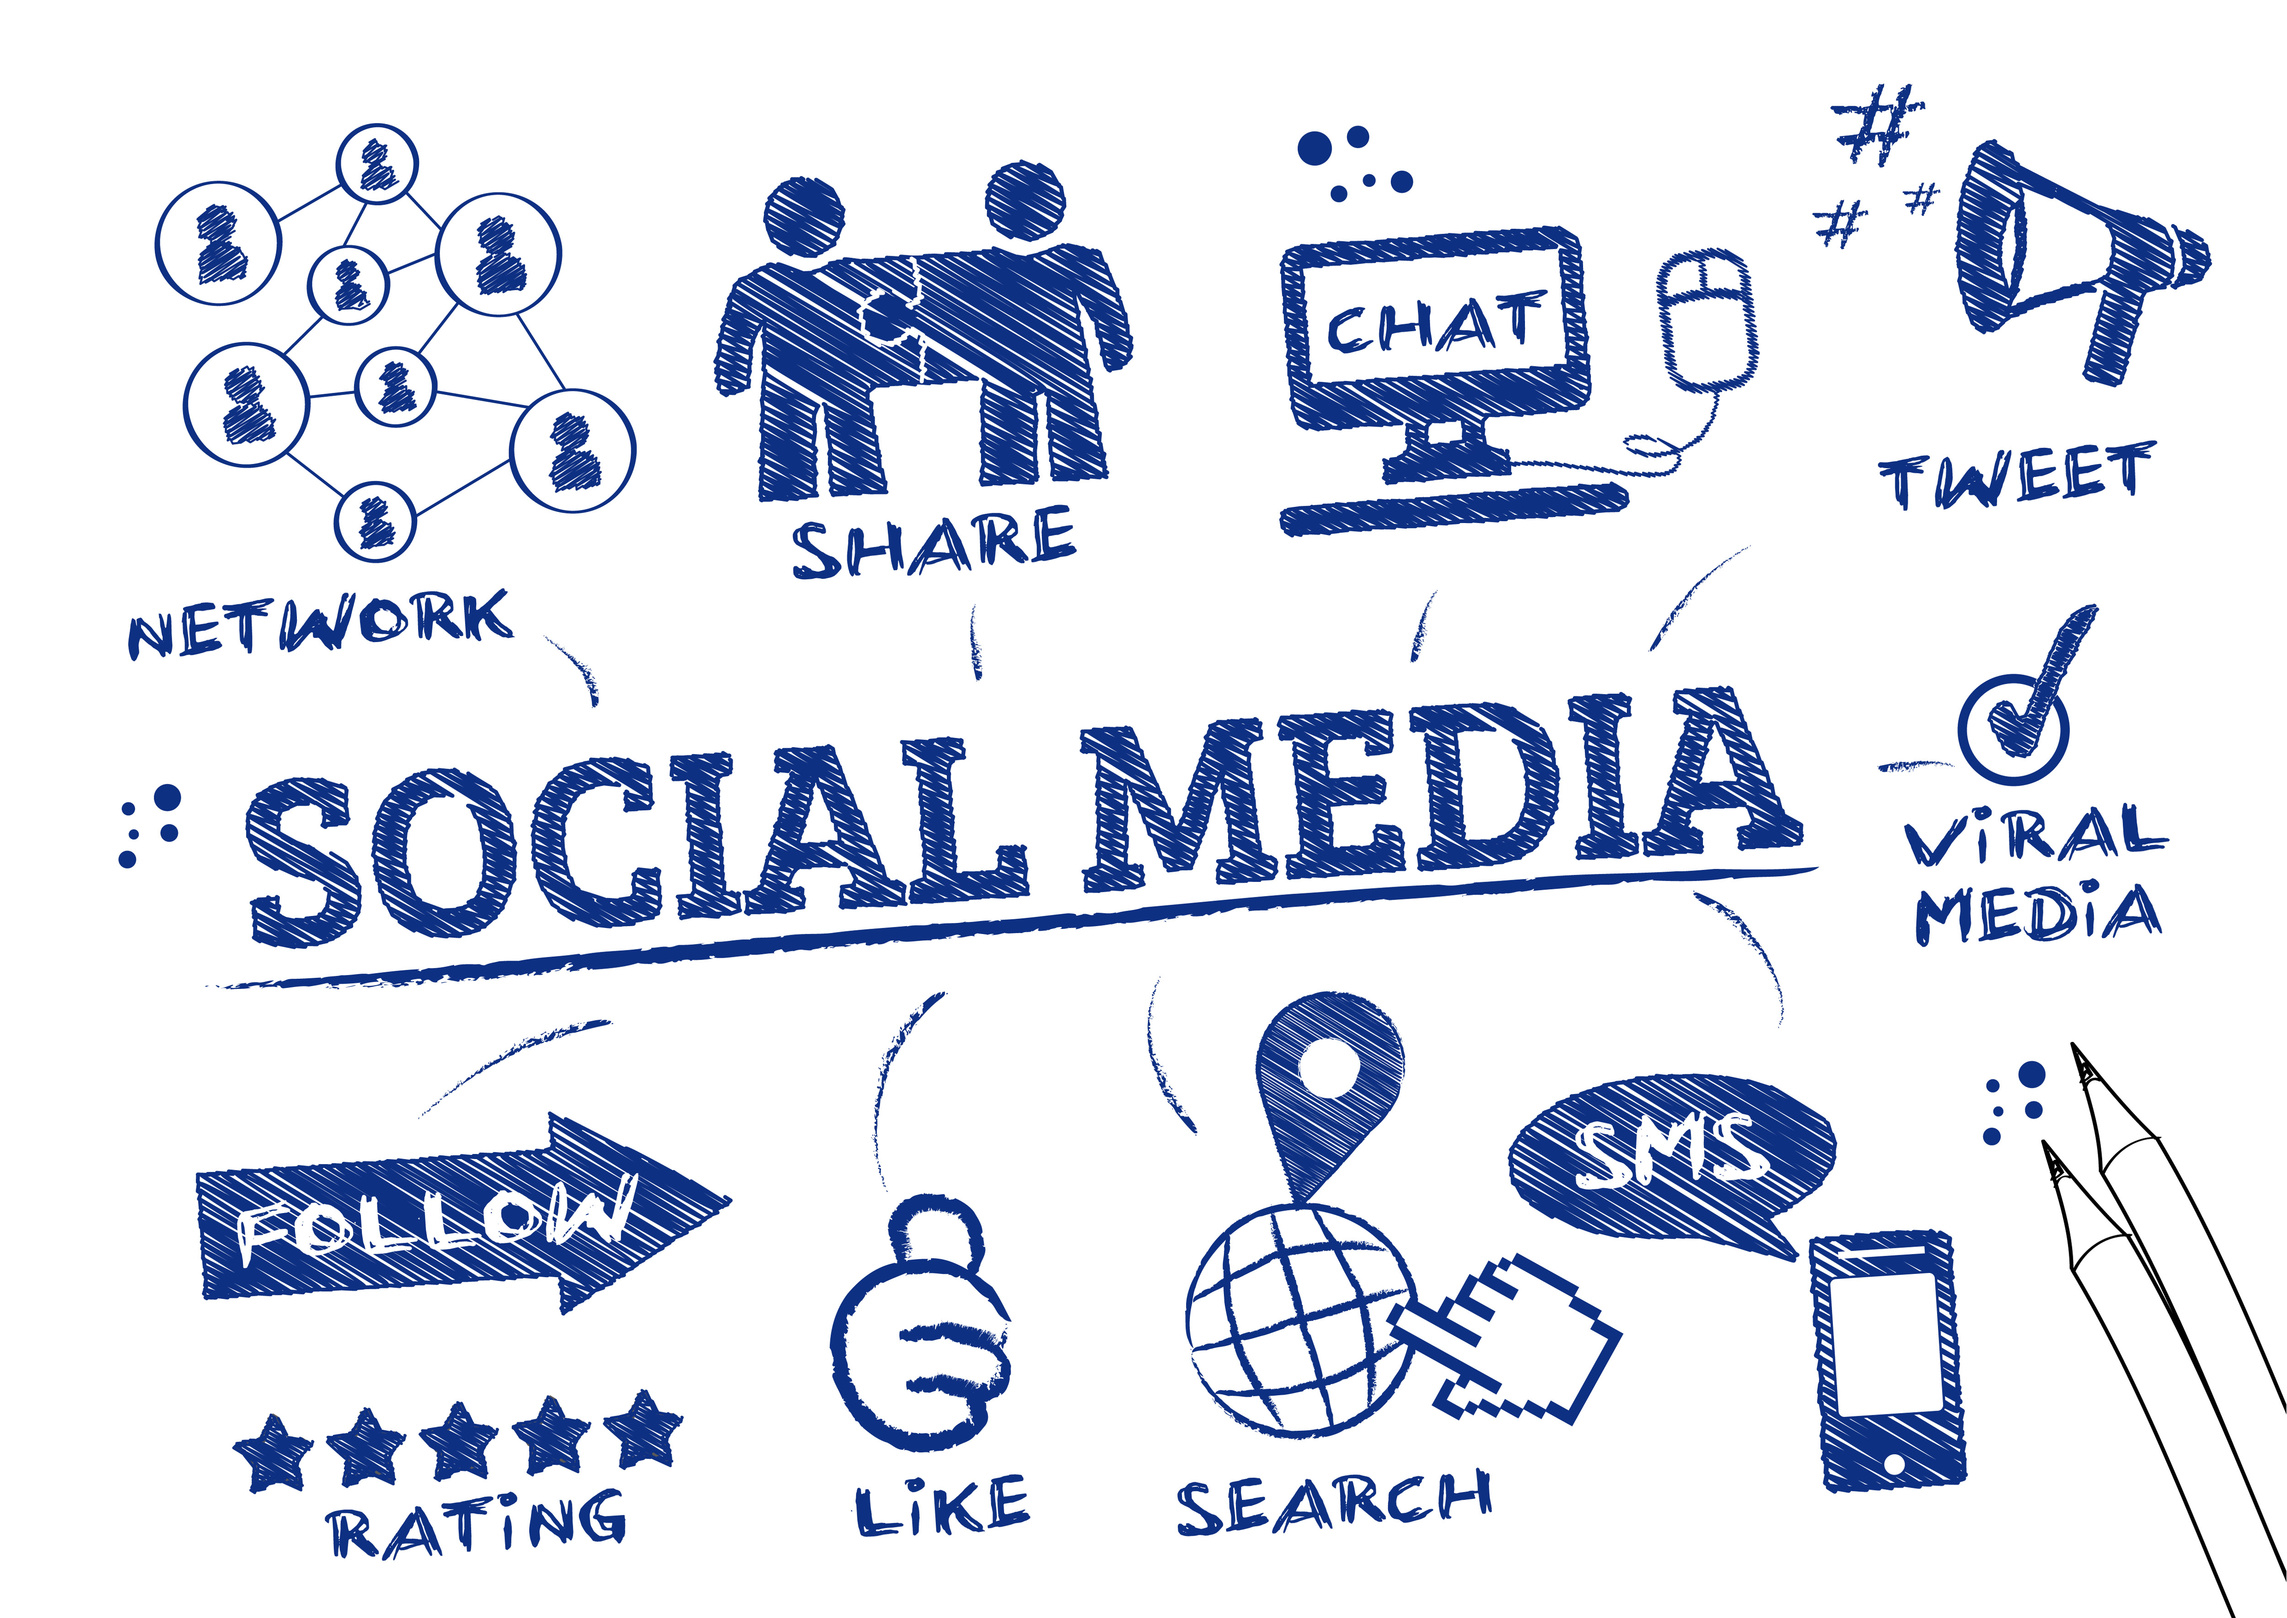 Social Media Marketing - a keystone of your digital presence